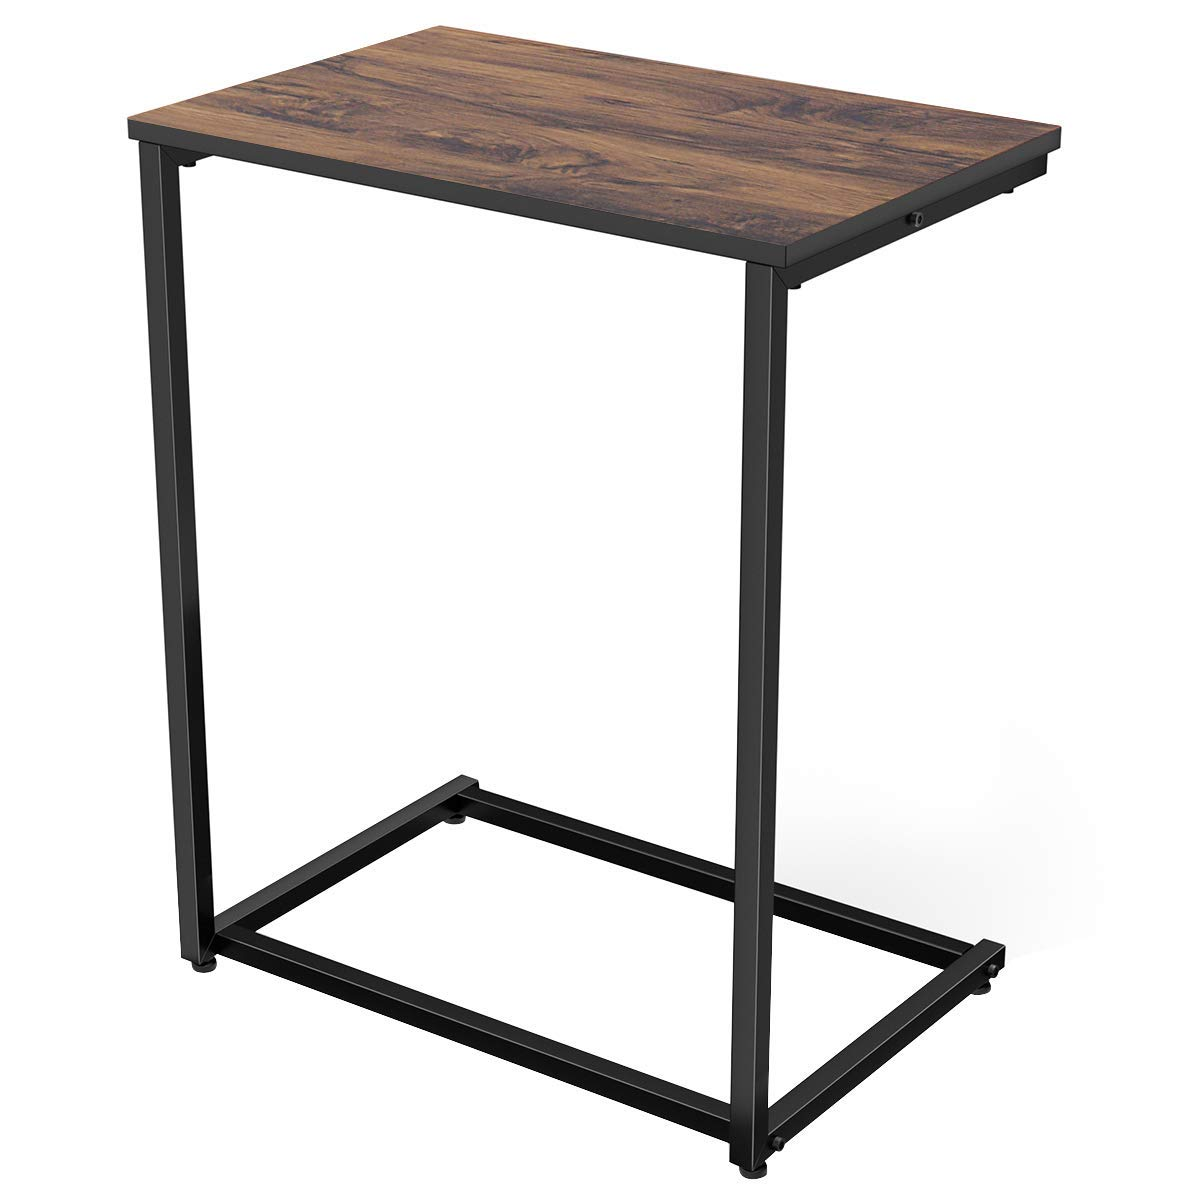 Homemaxs C Table Sofa Side End Table Wood Finish Steel Construction 26-Inch for Small Space by Homemaxs